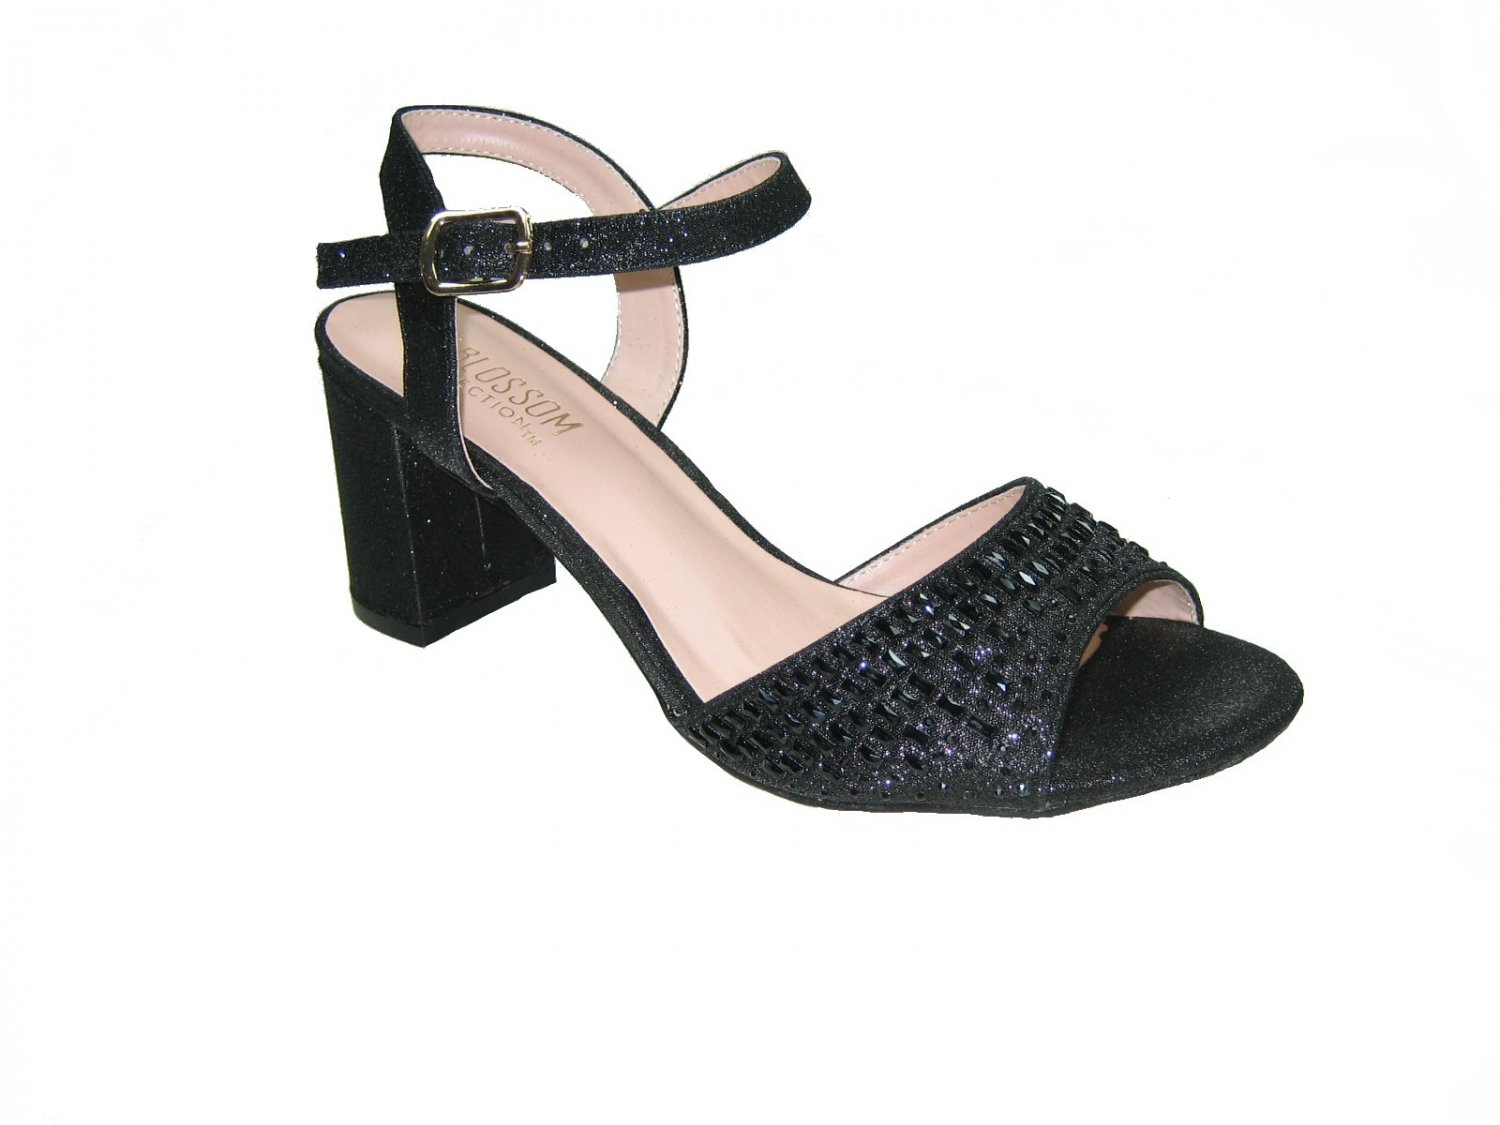 Blossom amber-9 strappy black sparkle shimmer 3 inch block heel party sandals size 7.5